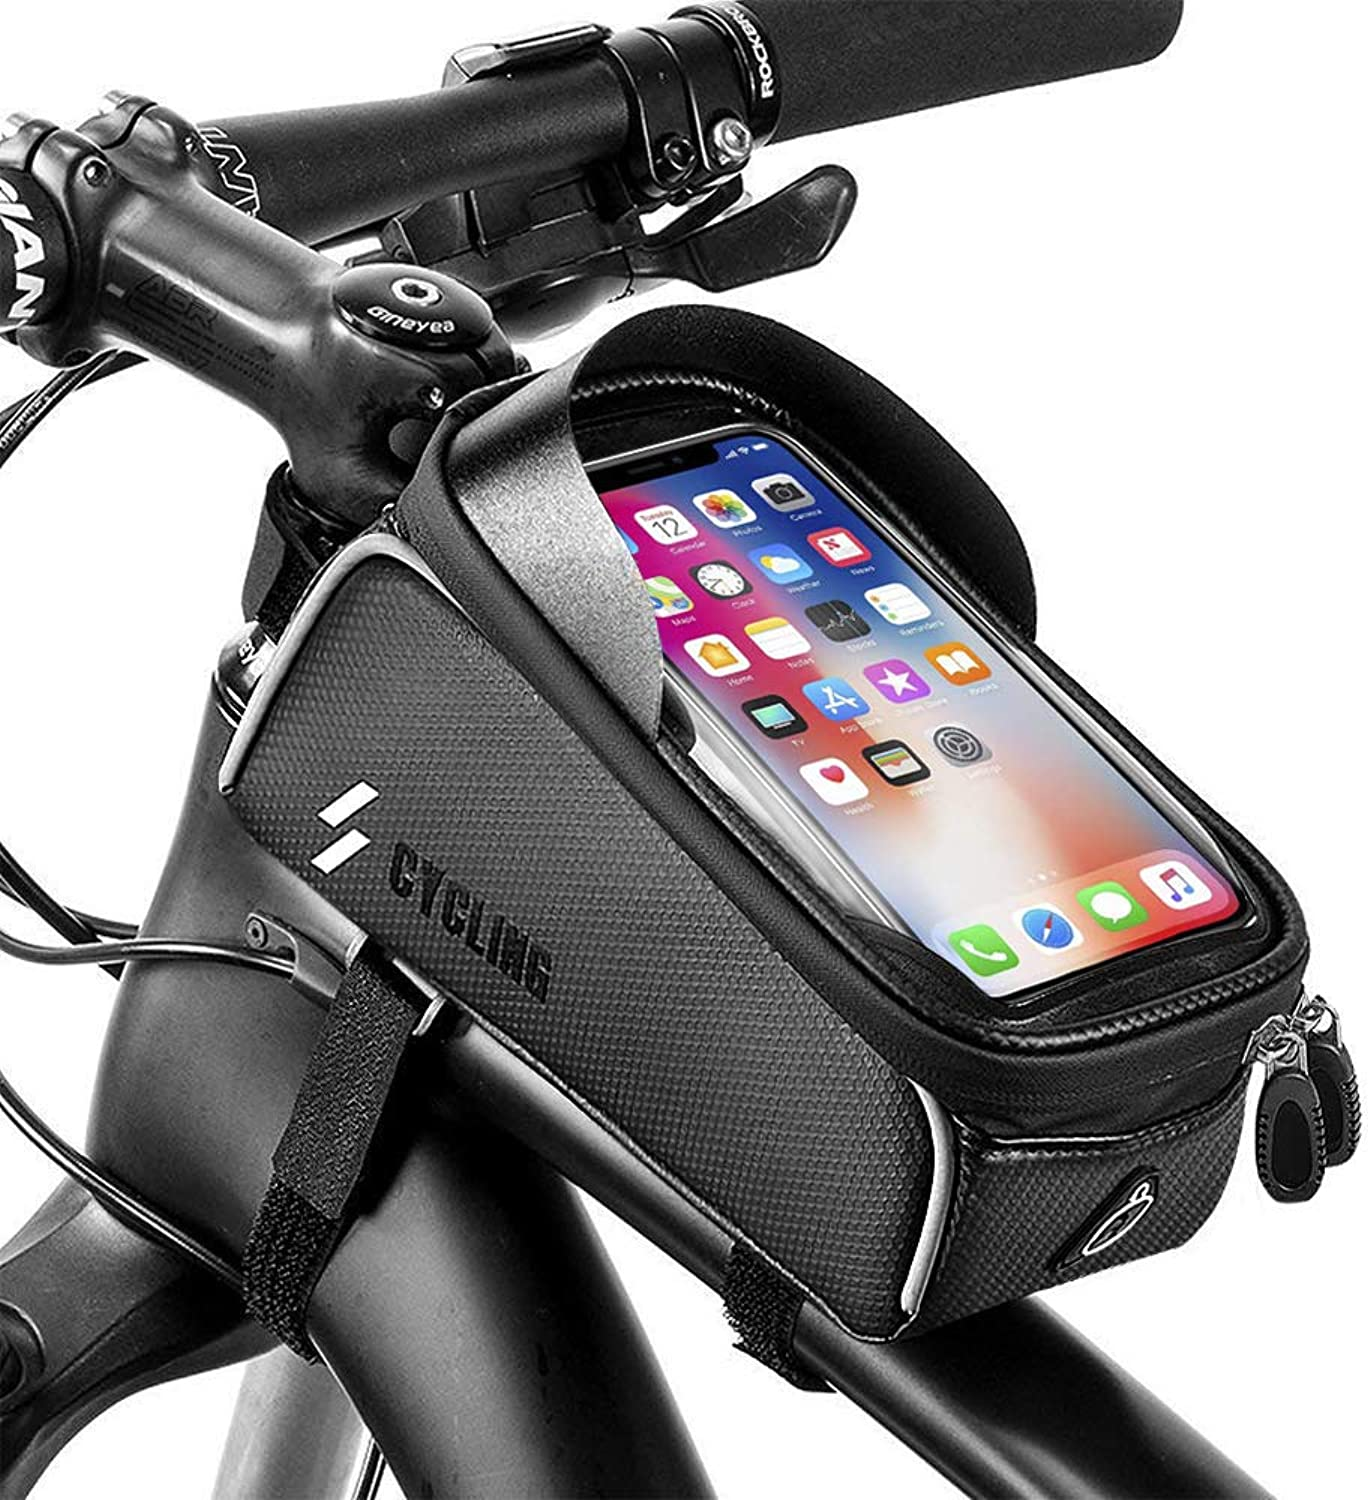 e0640c36e4403 6 Inch Waterproof Bike Mount for Phone Anti Shake, Stable Clamp with ...